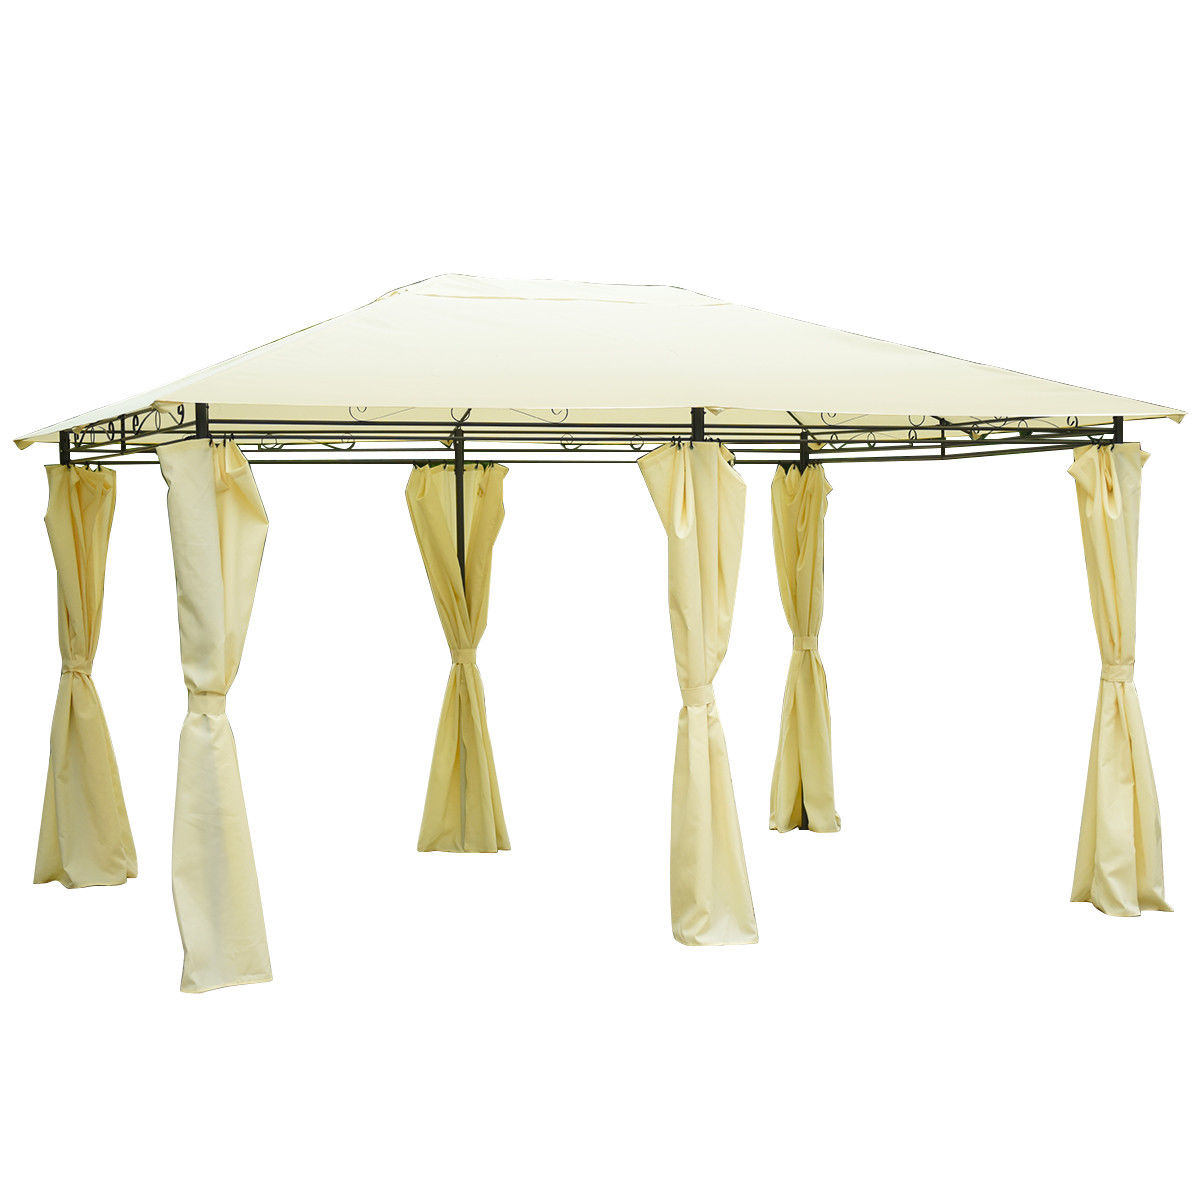 Costway 13'x 10' Gazebo Canopy Shelter Patio Party Tent Outdoor Awning W/Side Walls